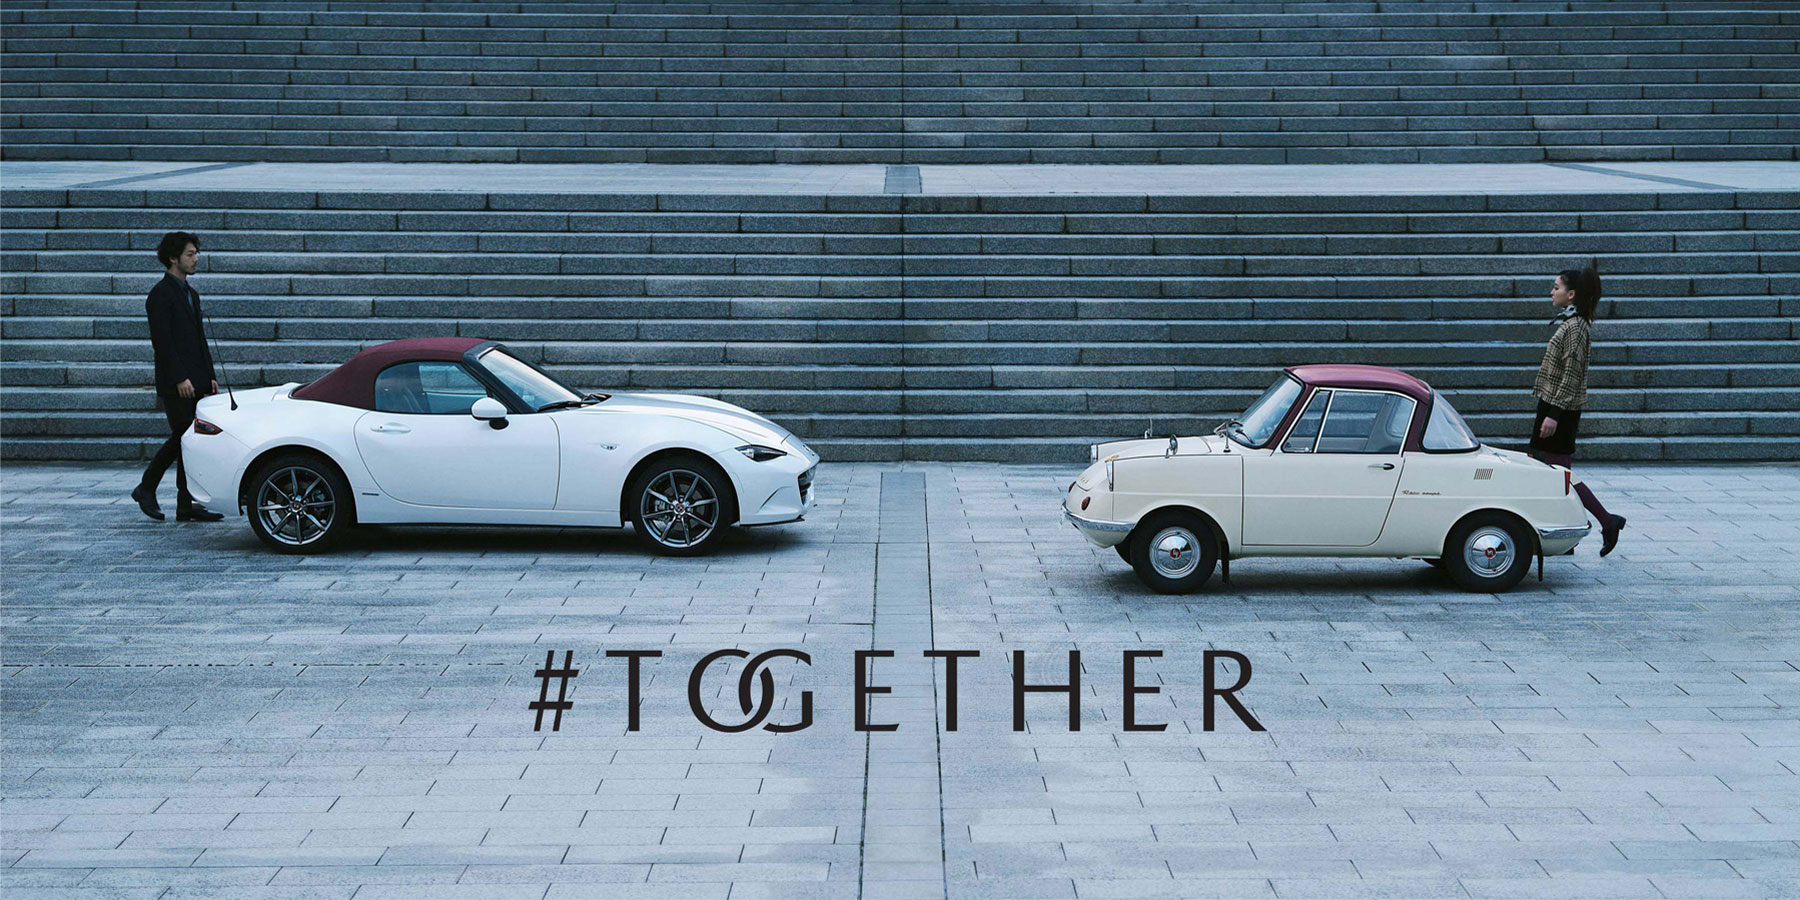 https://maweko.mazda.at/wp-content/uploads/sites/78/2020/04/together-hero-1800x900.jpg